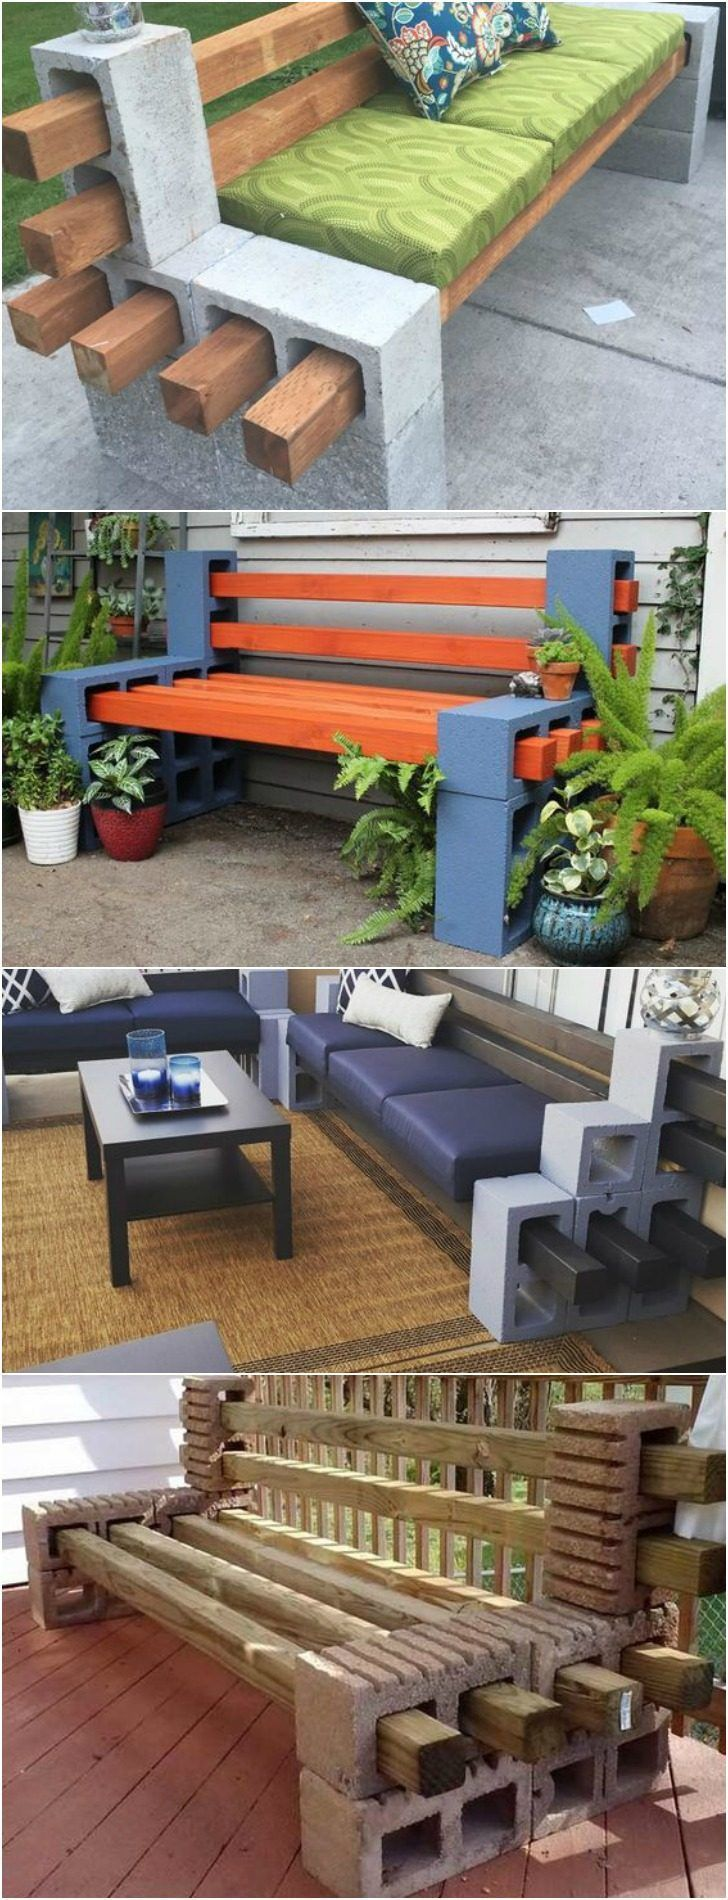 How to Make a Cinder Block Bench: 10 Amazing Ideas to Inspire You!(画像あり) | 裏庭のアイデア, 屋外パティオ, ガーデンハウス